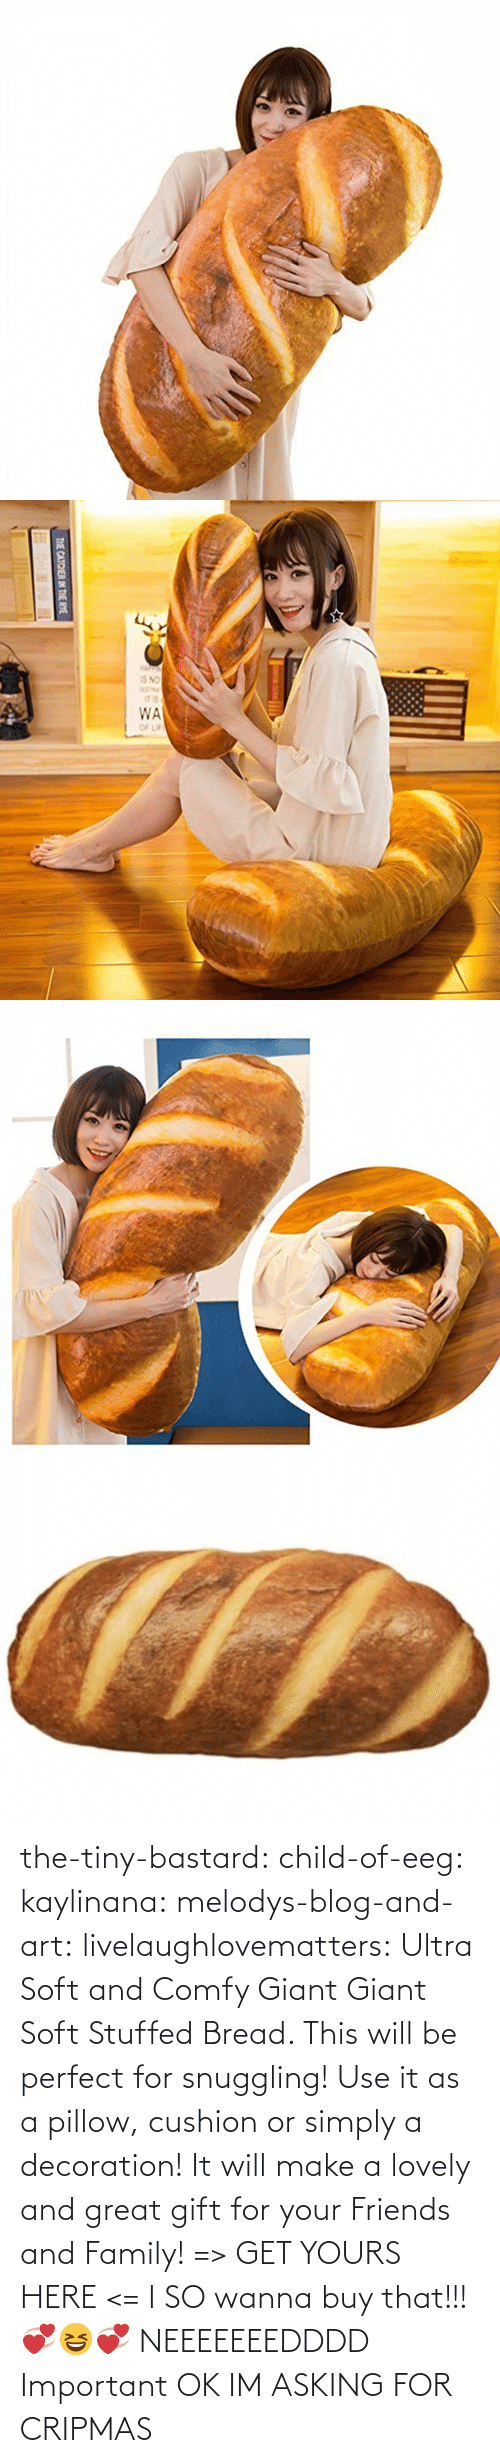 Giant: THE CATCHER IN THE RYE the-tiny-bastard:  child-of-eeg:  kaylinana: melodys-blog-and-art:  livelaughlovematters:  Ultra Soft and Comfy Giant Giant Soft Stuffed Bread. This will be perfect for snuggling! Use it as a pillow, cushion or simply a decoration! It will make a lovely and great gift for your Friends and Family! => GET YOURS HERE <=   I SO wanna buy that!!! 💞😆💞   NEEEEEEEDDDD   Important  OK IM ASKING FOR CRIPMAS